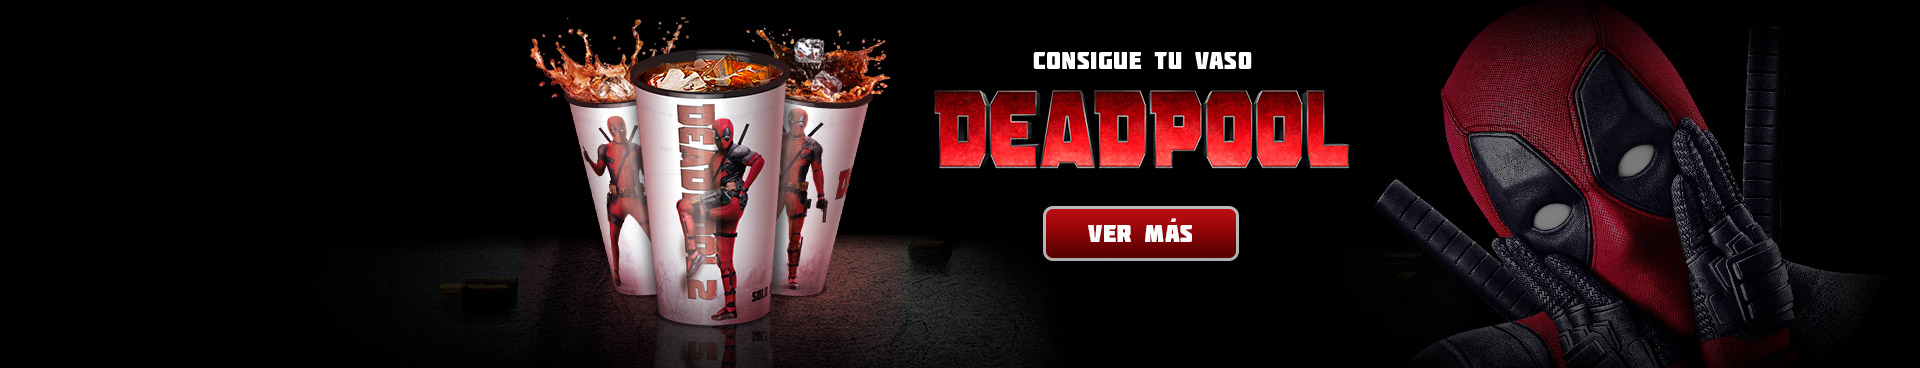 Promocionales Deadpool